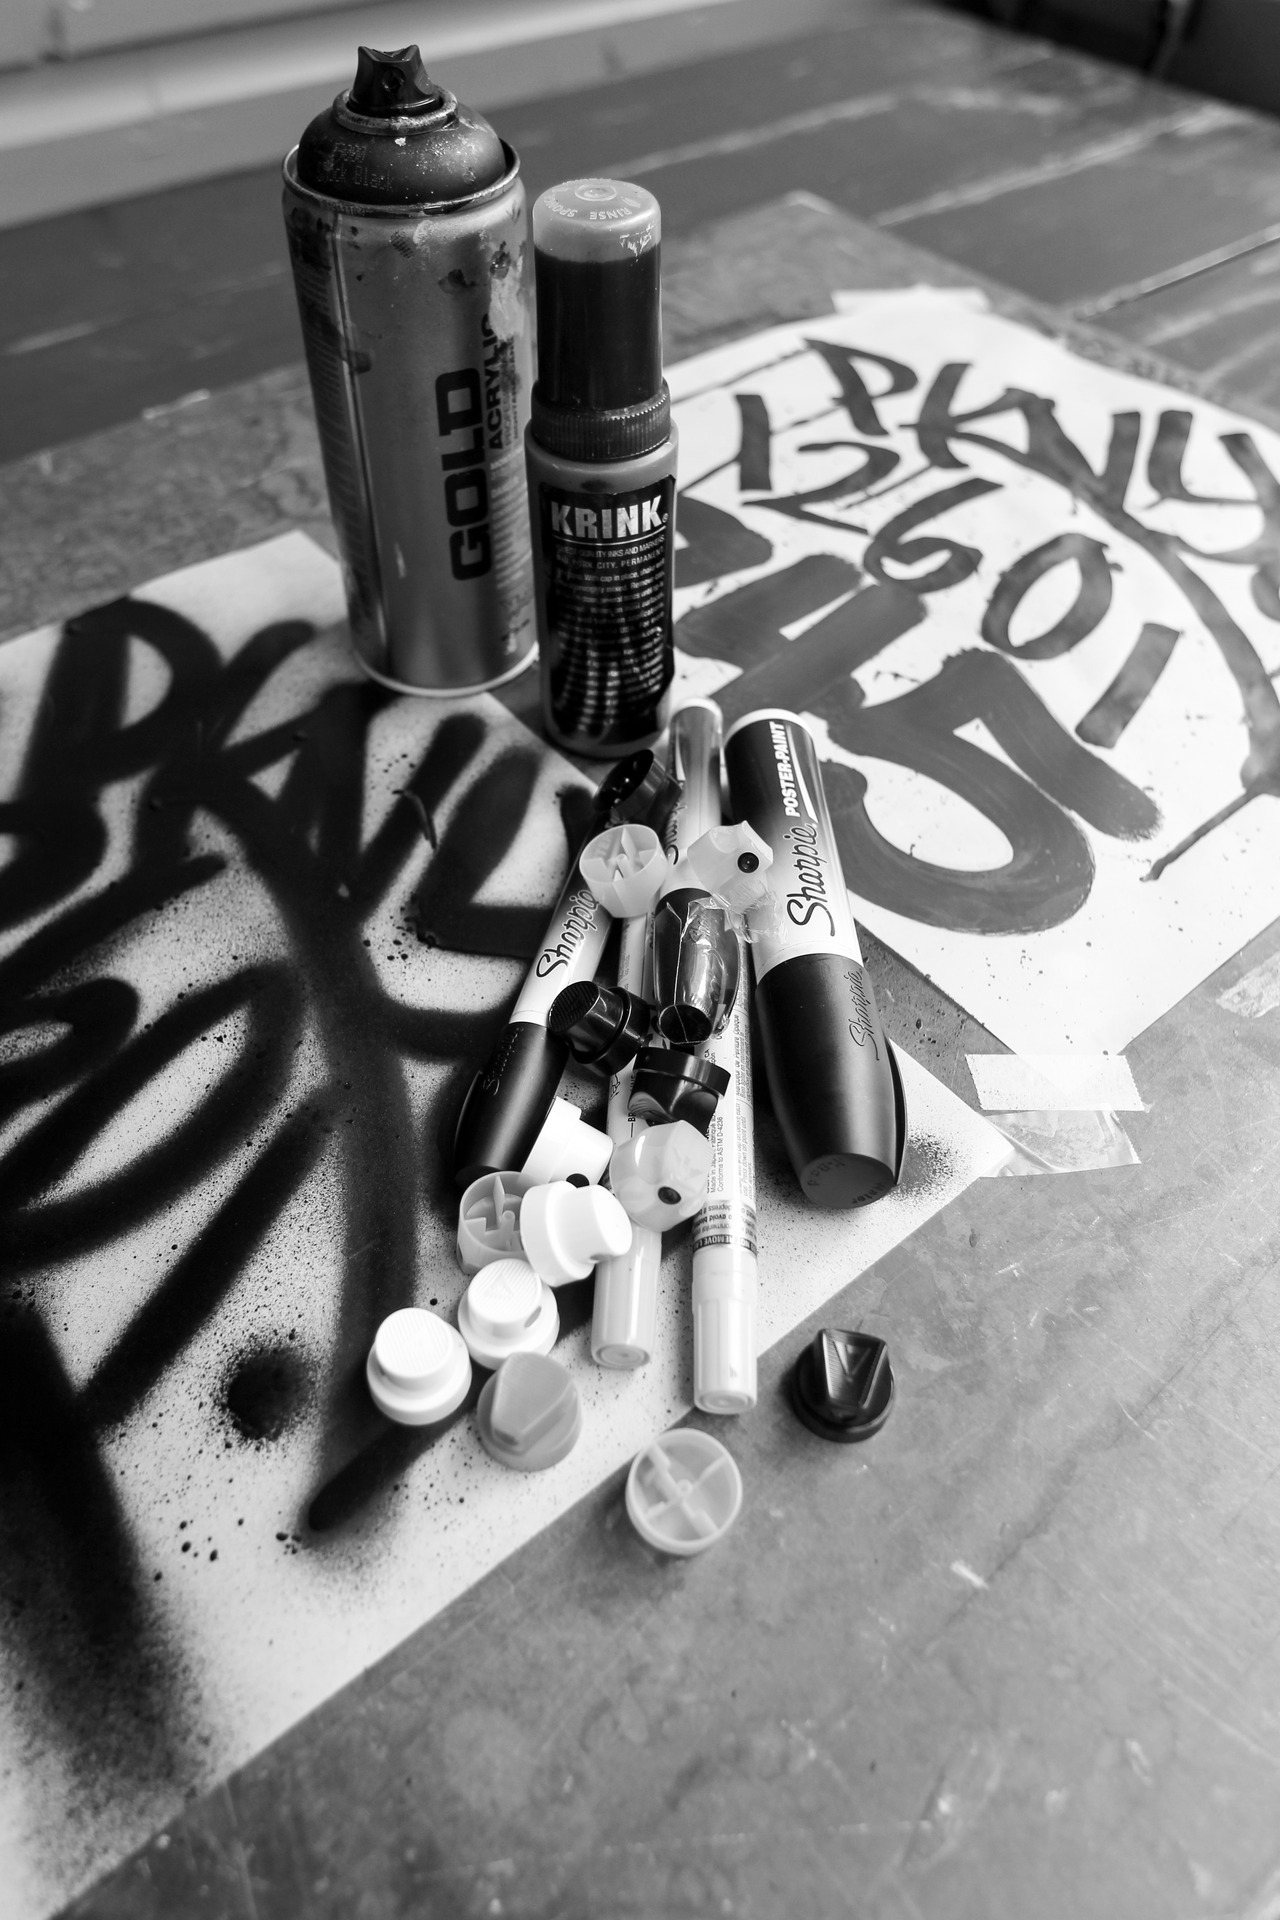 tools of the trade….HIP HOP DON'T STOP!